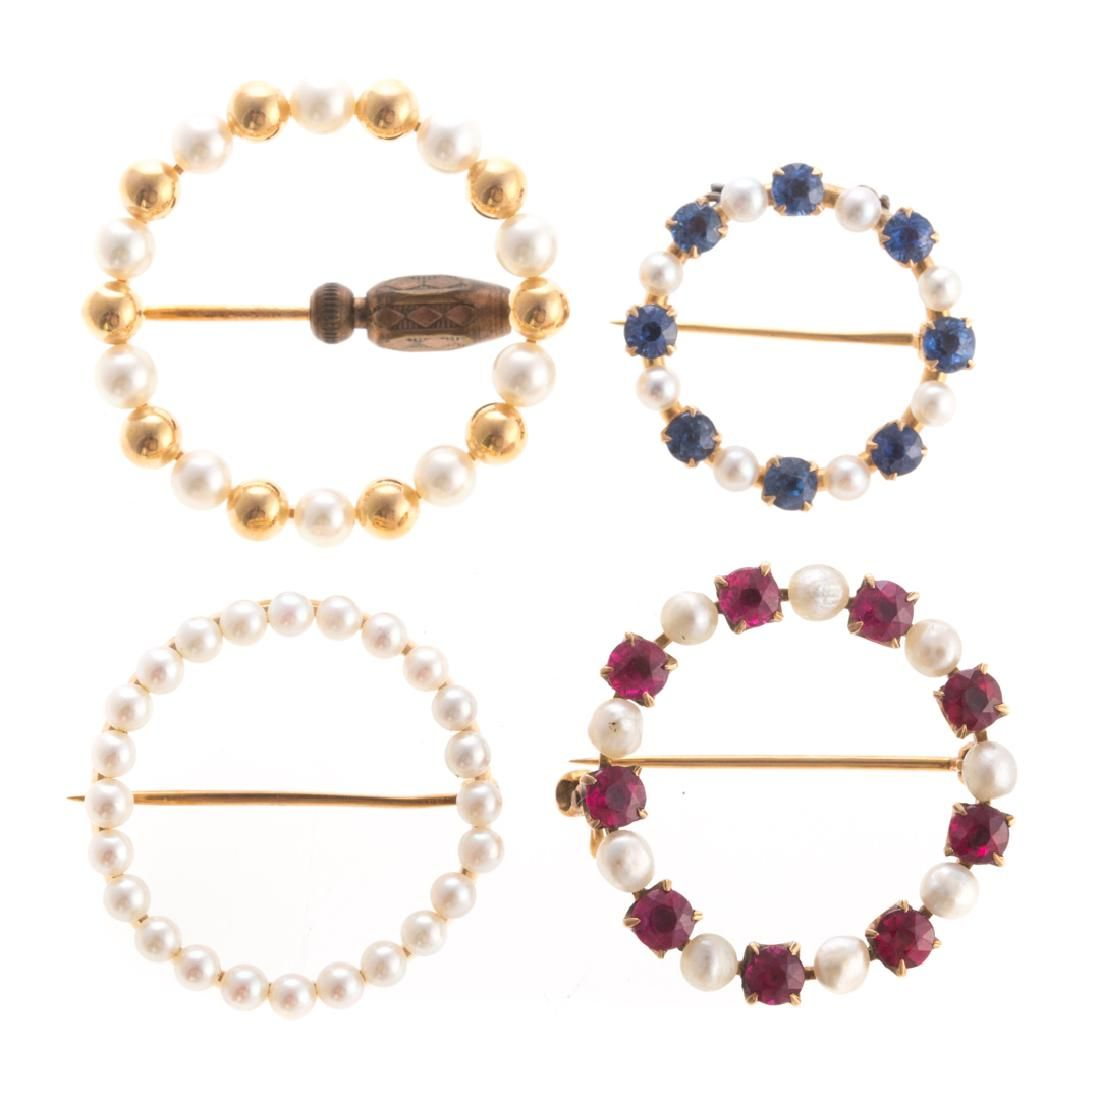 Four Circular Brooches in Pearls and Gold